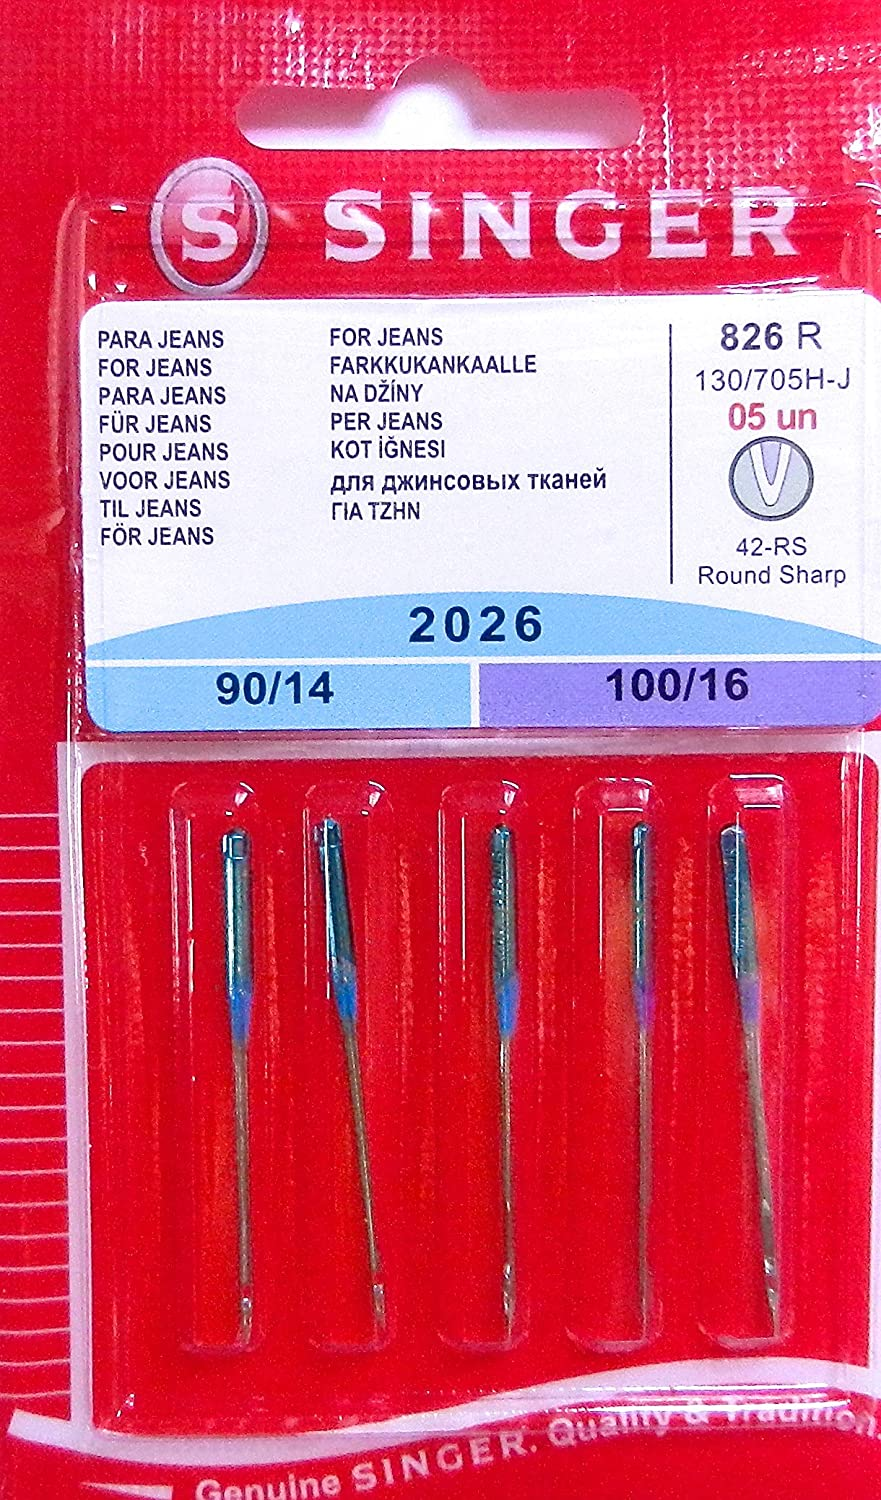 5Original Singer Sewing Machine Needles 2026 Thickness90/14& 100/16for Jeans 130/705H-J